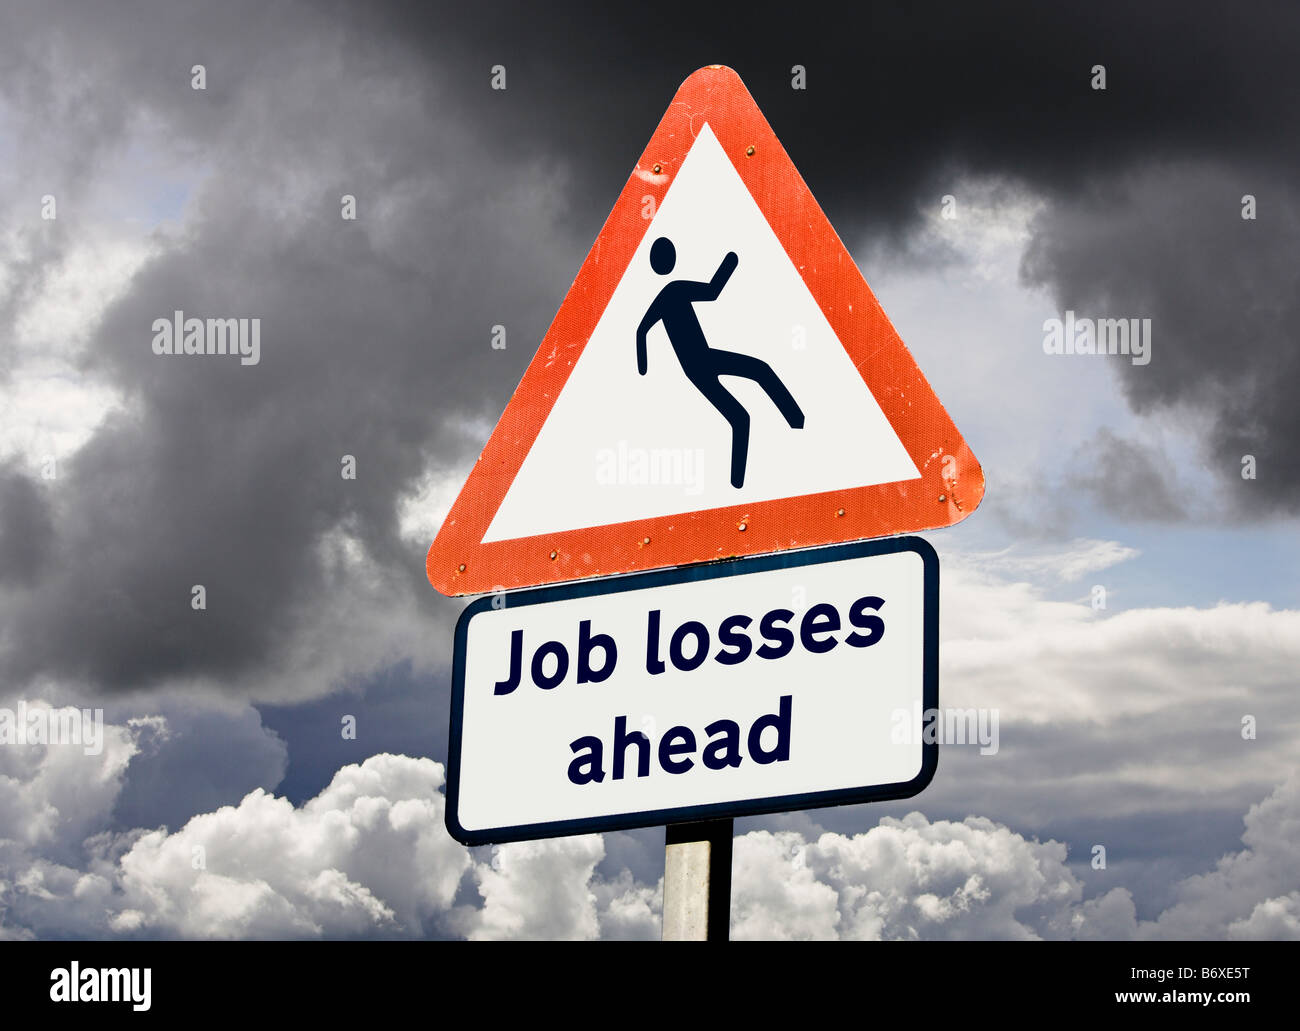 Unemployment job losses concept UK - Stock Image